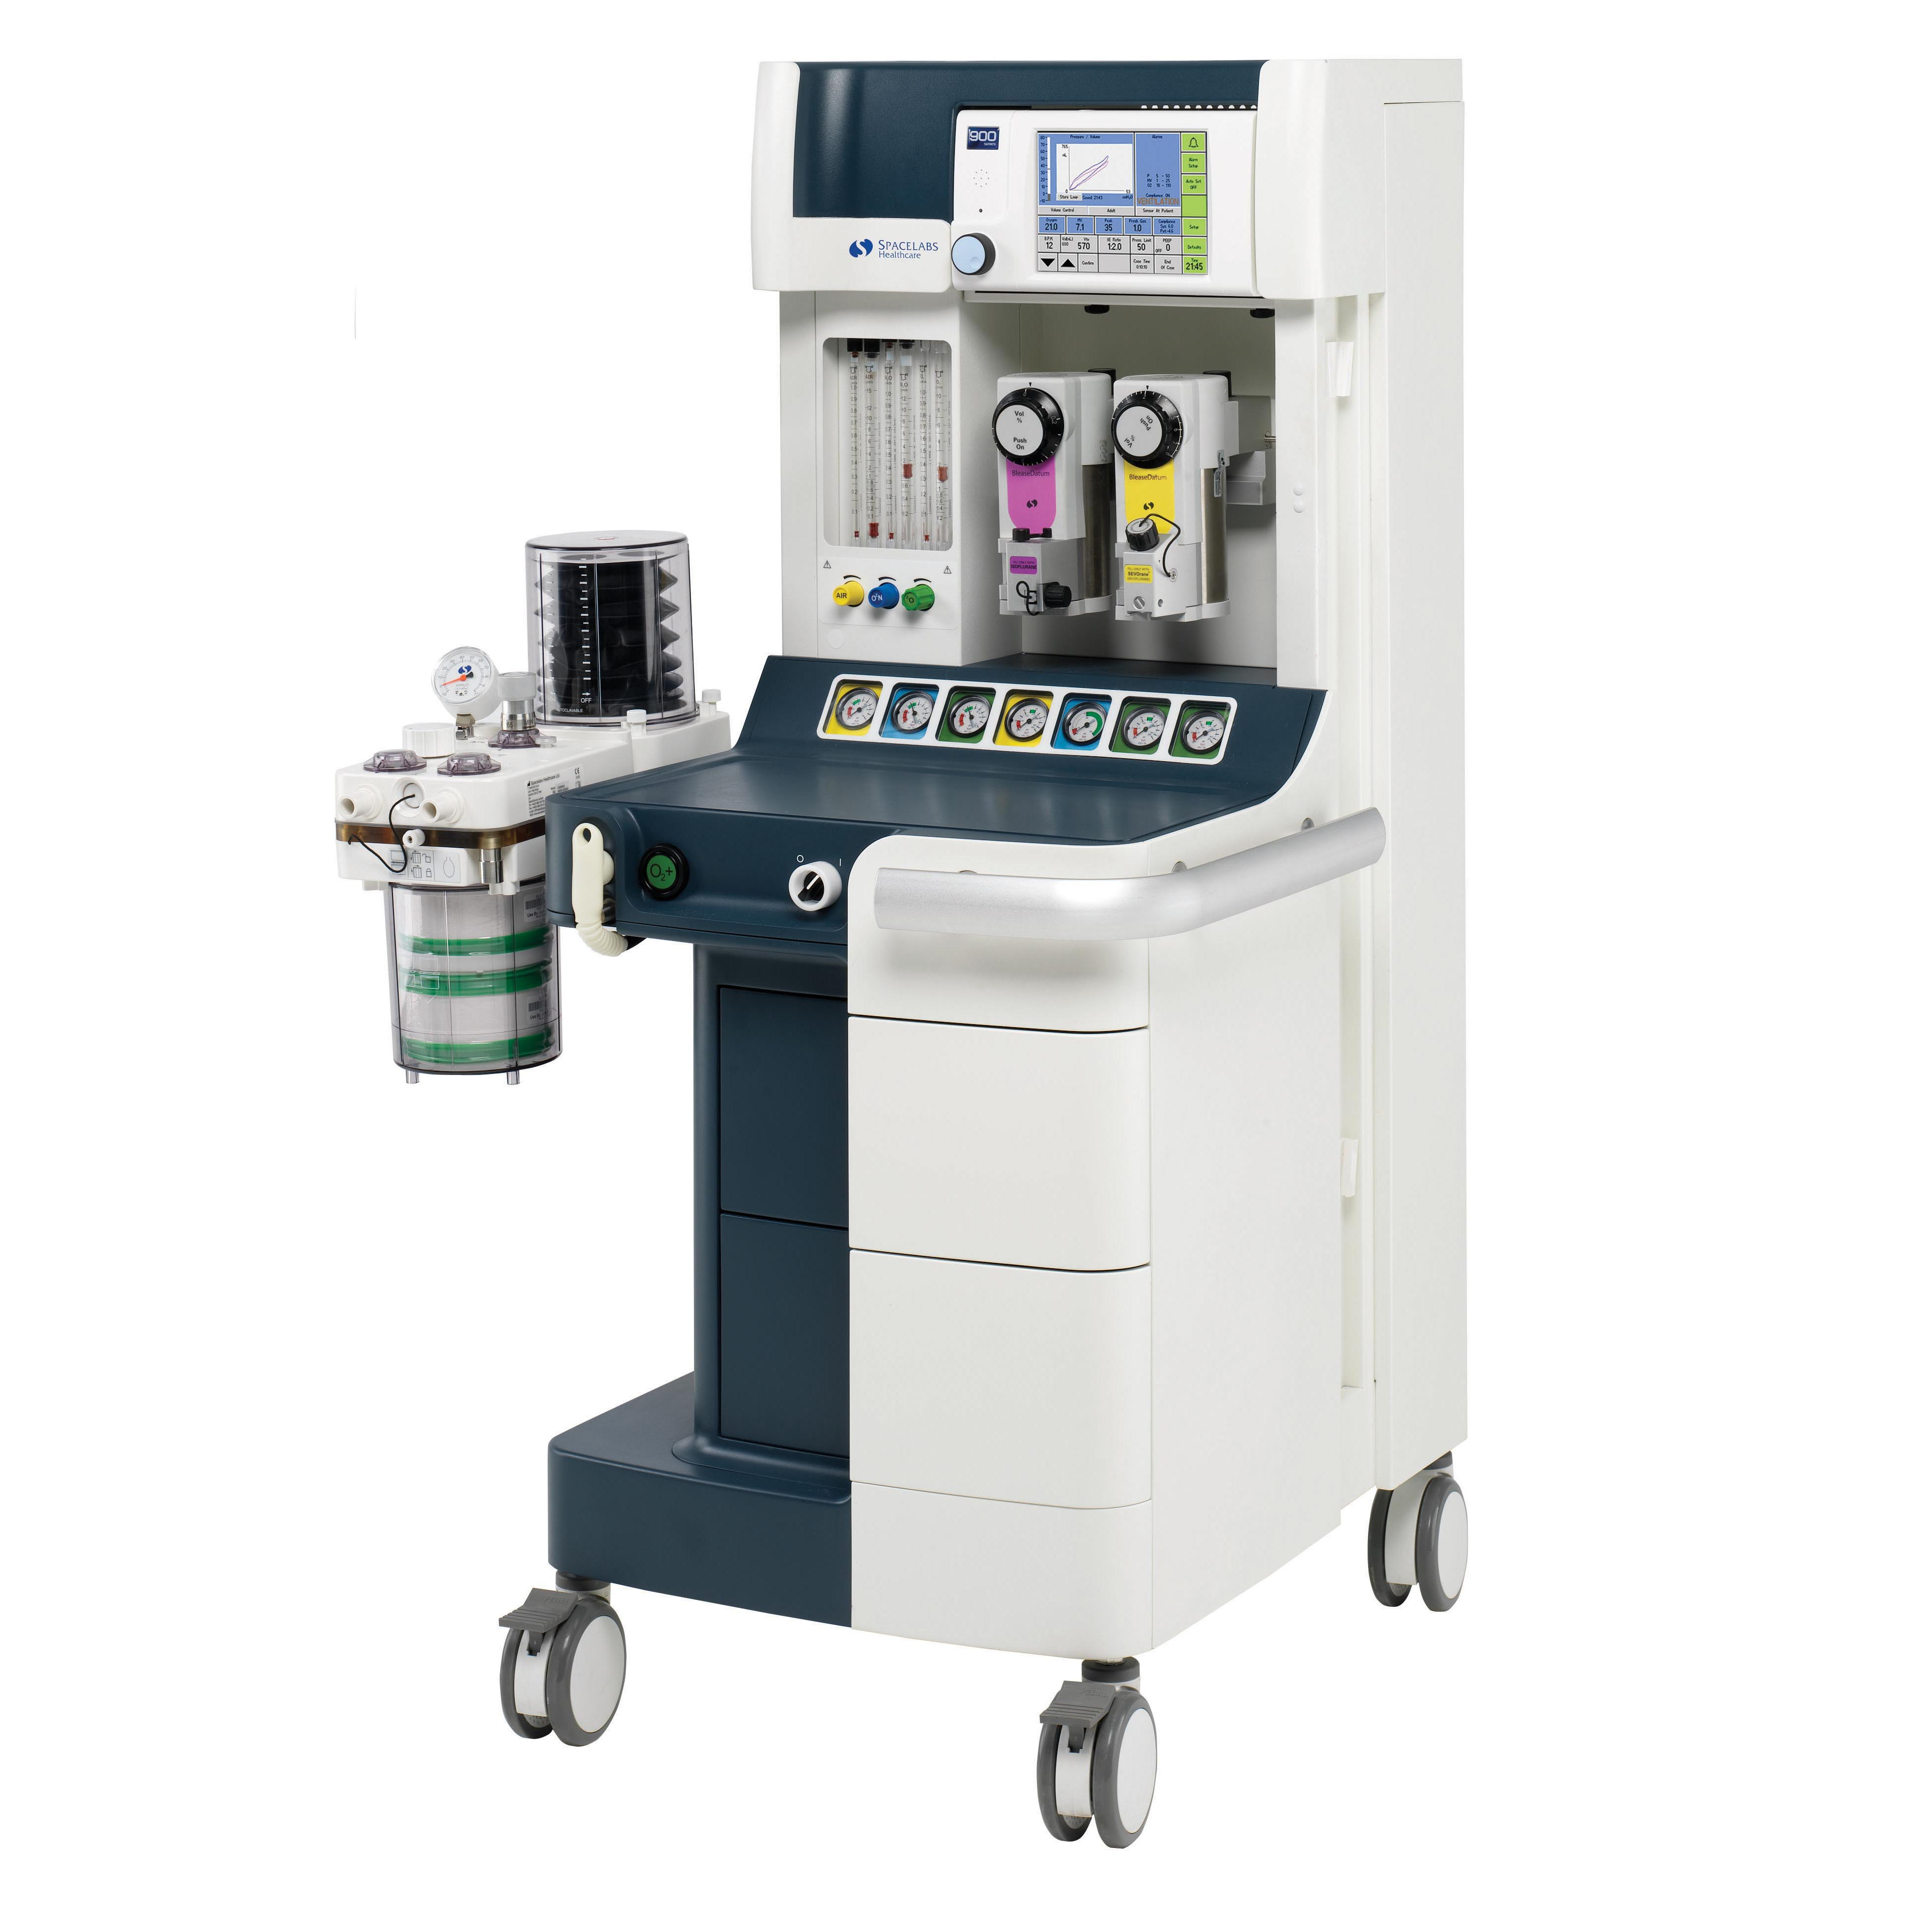 spacelabs blease focus anaesthetic machine ecomed rh ecomed com au